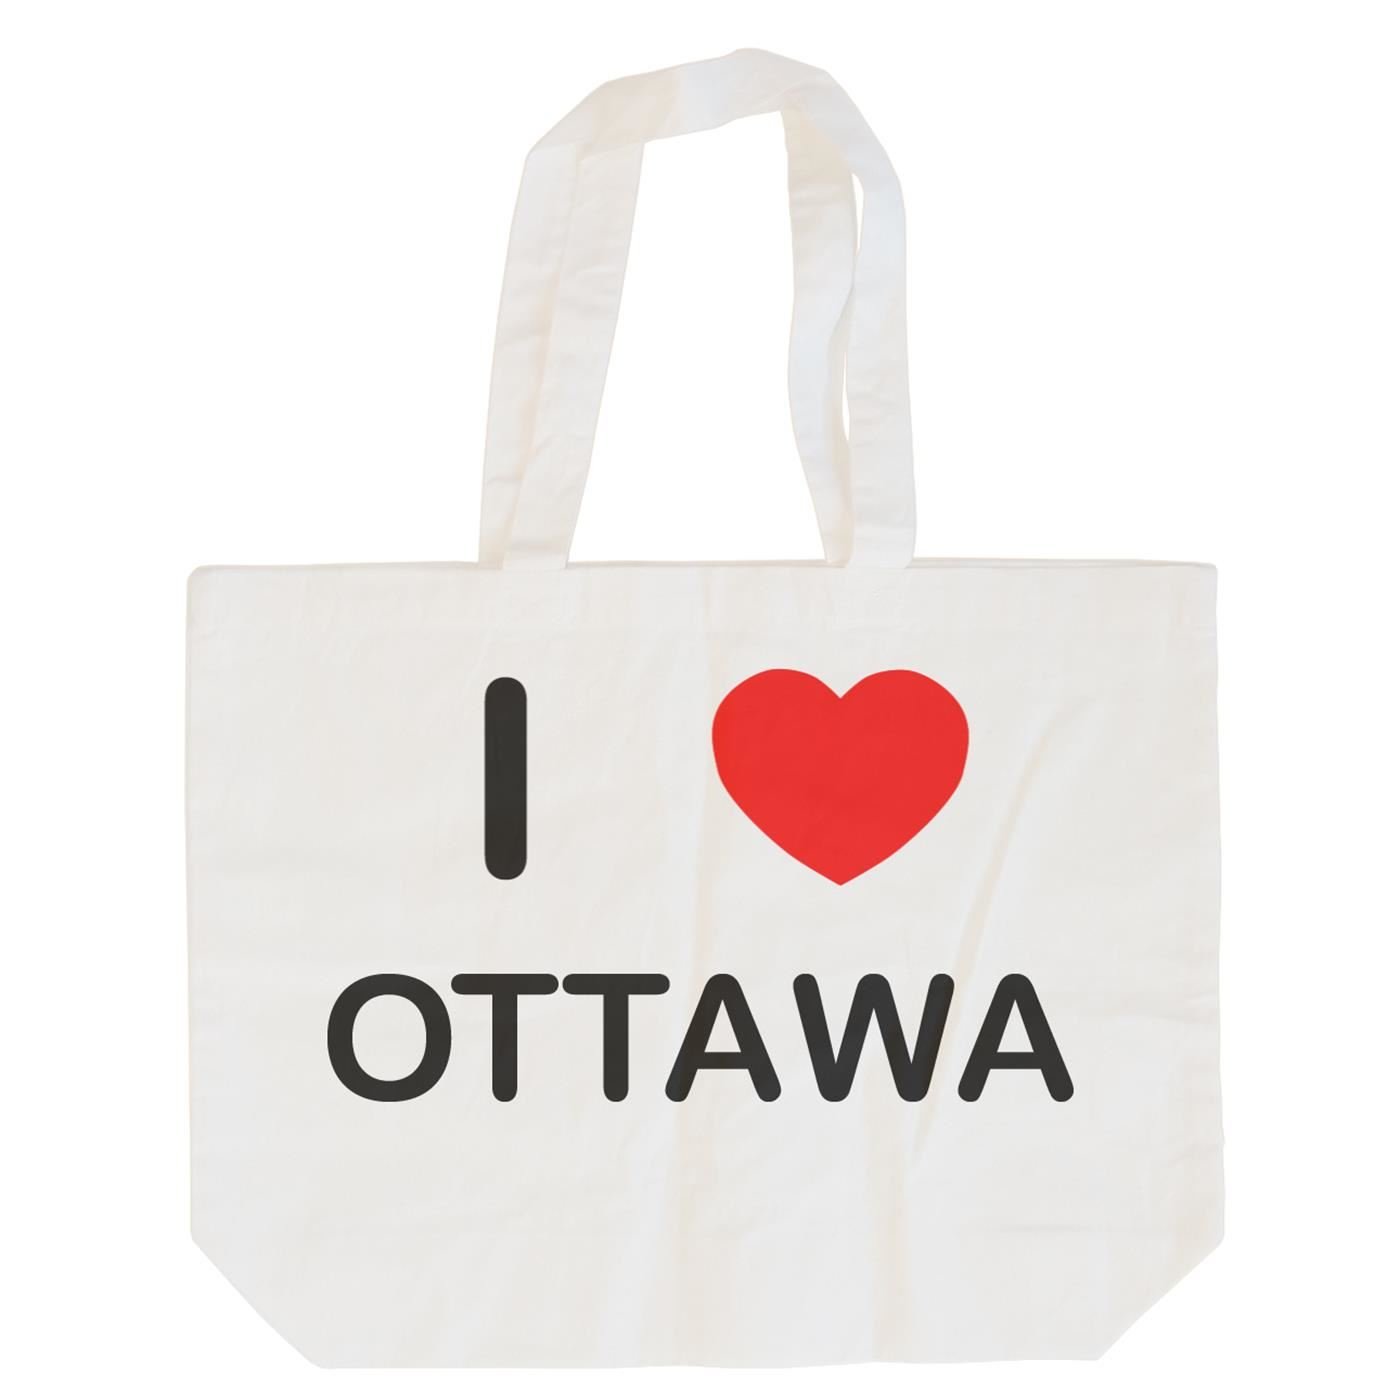 I Love Ottawa - Cotton Bag | Size choice Tote, Shopper or Sling